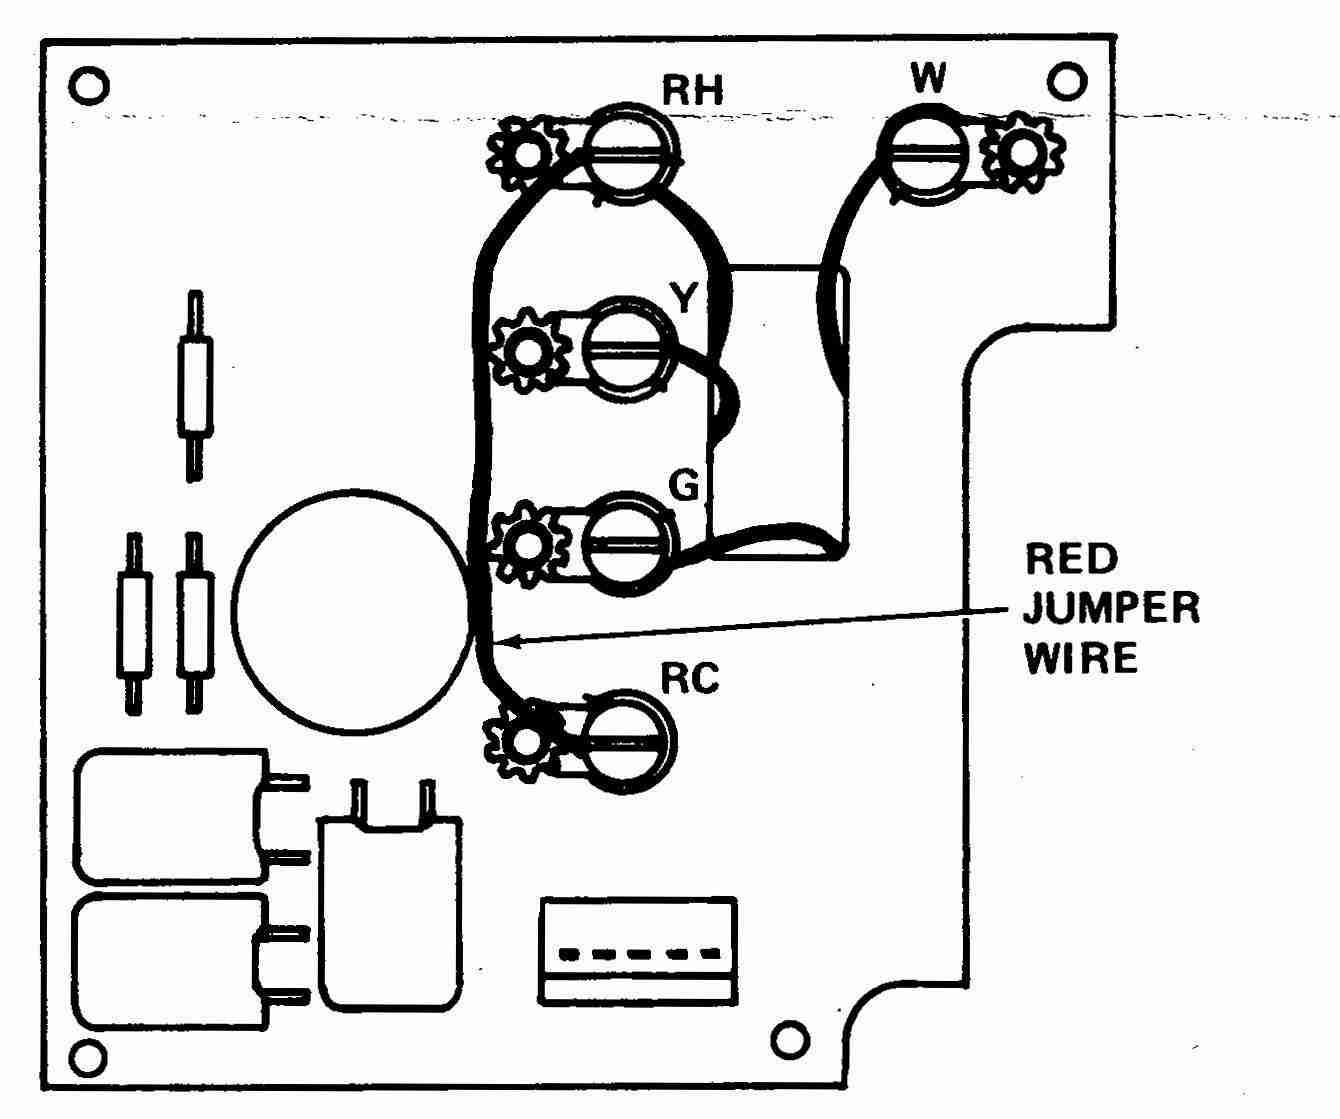 WR_1F90_006f16_DJFc how wire a white rodgers room thermostat, white rodgers thermostat white rodgers gas valve wiring diagram at soozxer.org